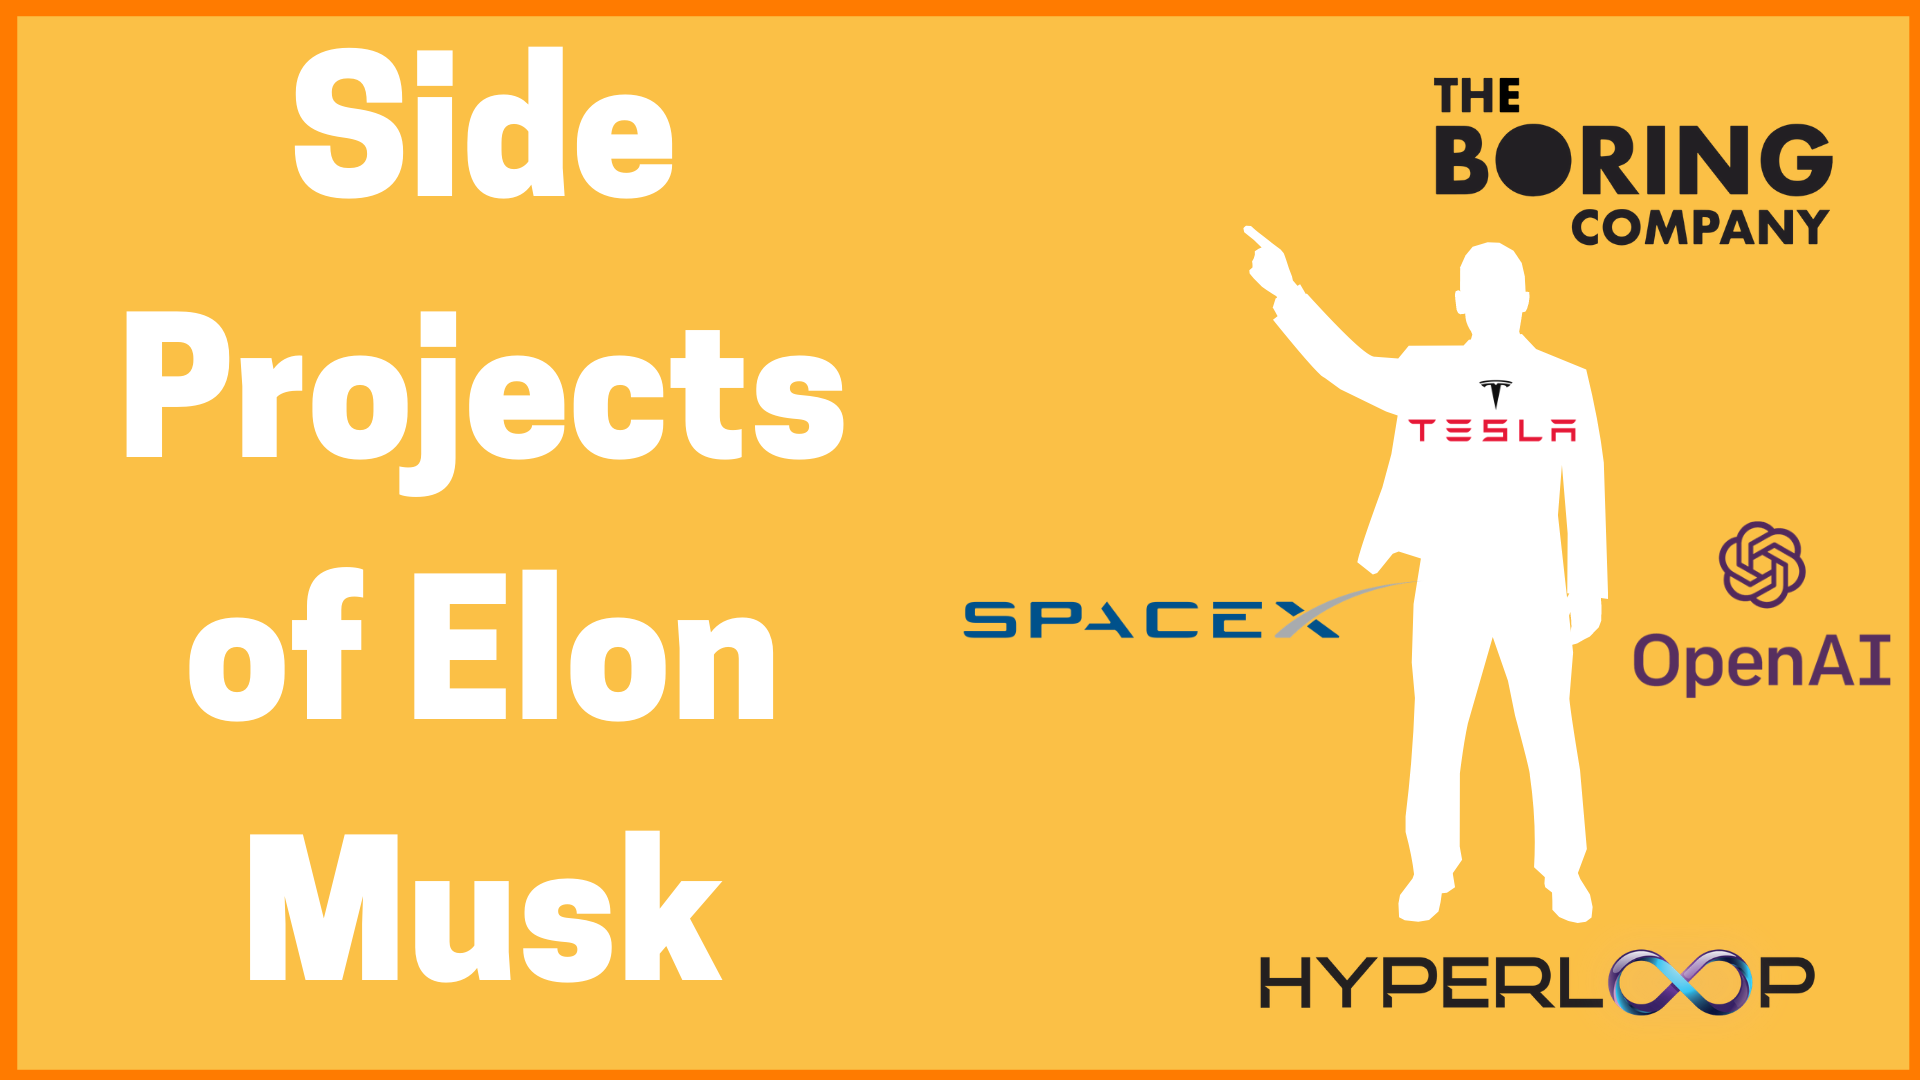 Side Projects of Elon Musk